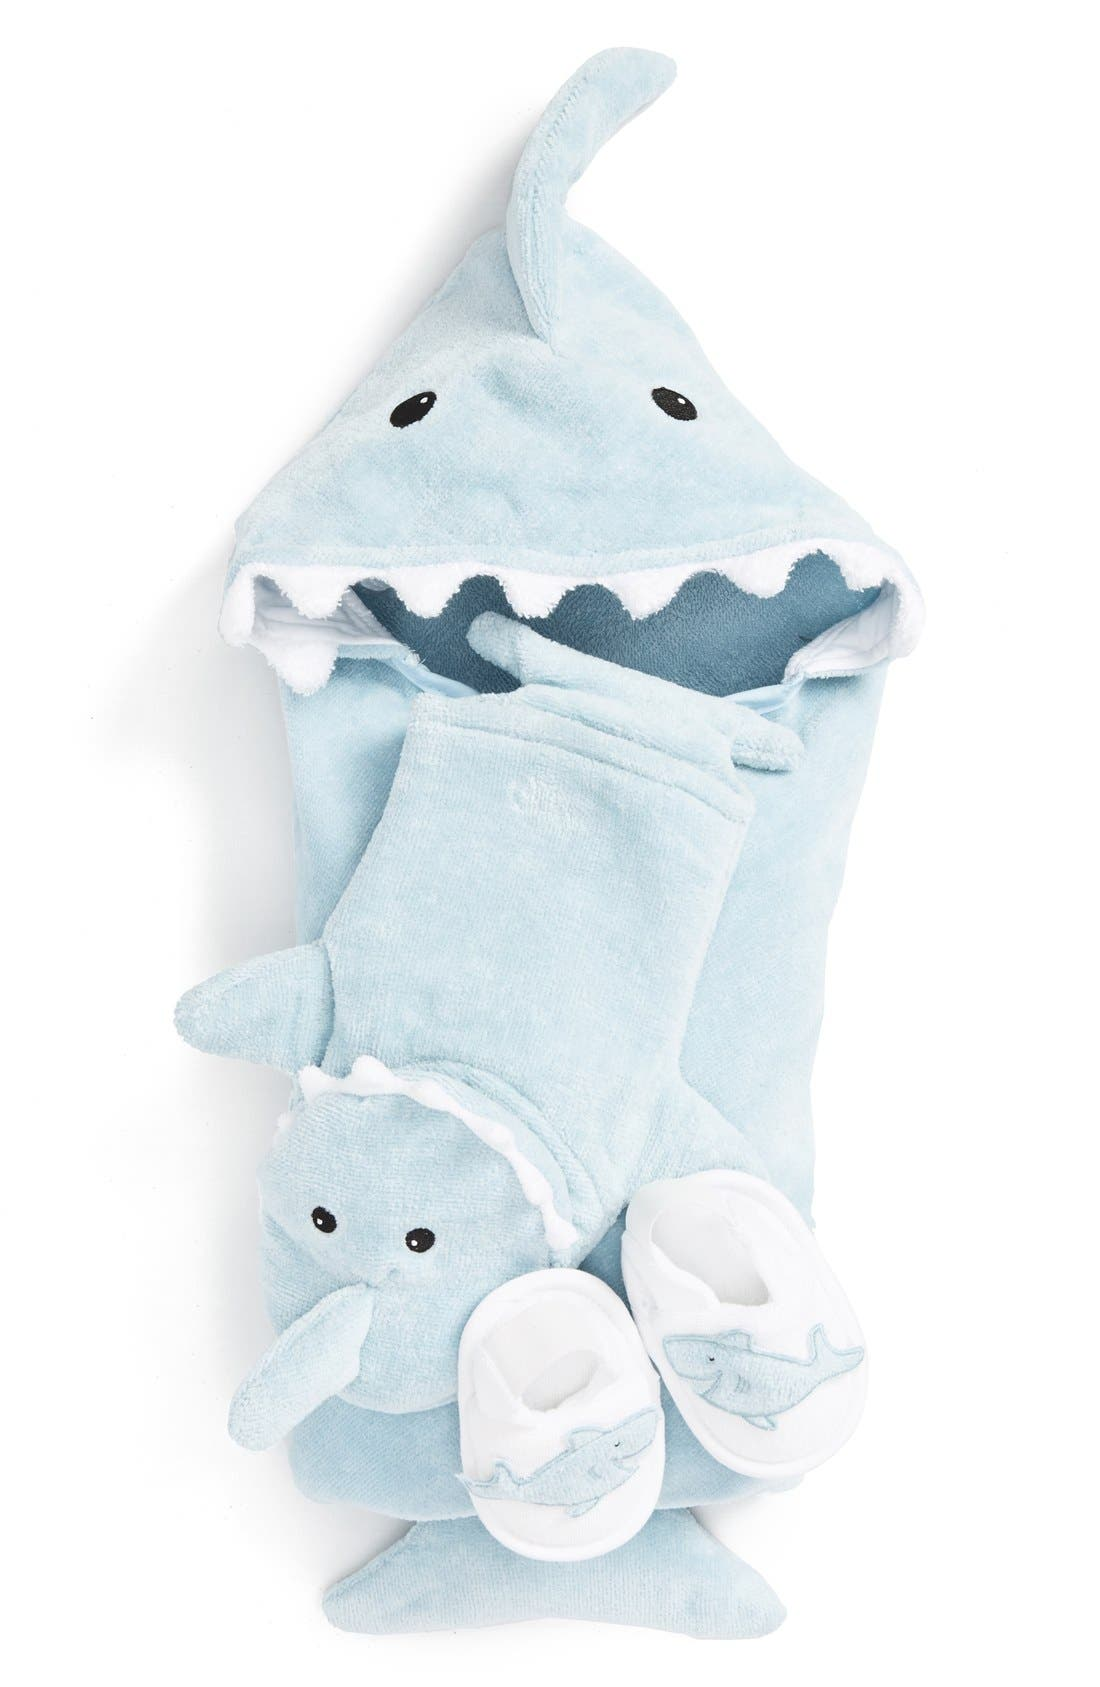 Baby Aspen 'Let the Fin Begin' Hooded Terry Robe, Bath Mitt & Slippers Set (Baby)